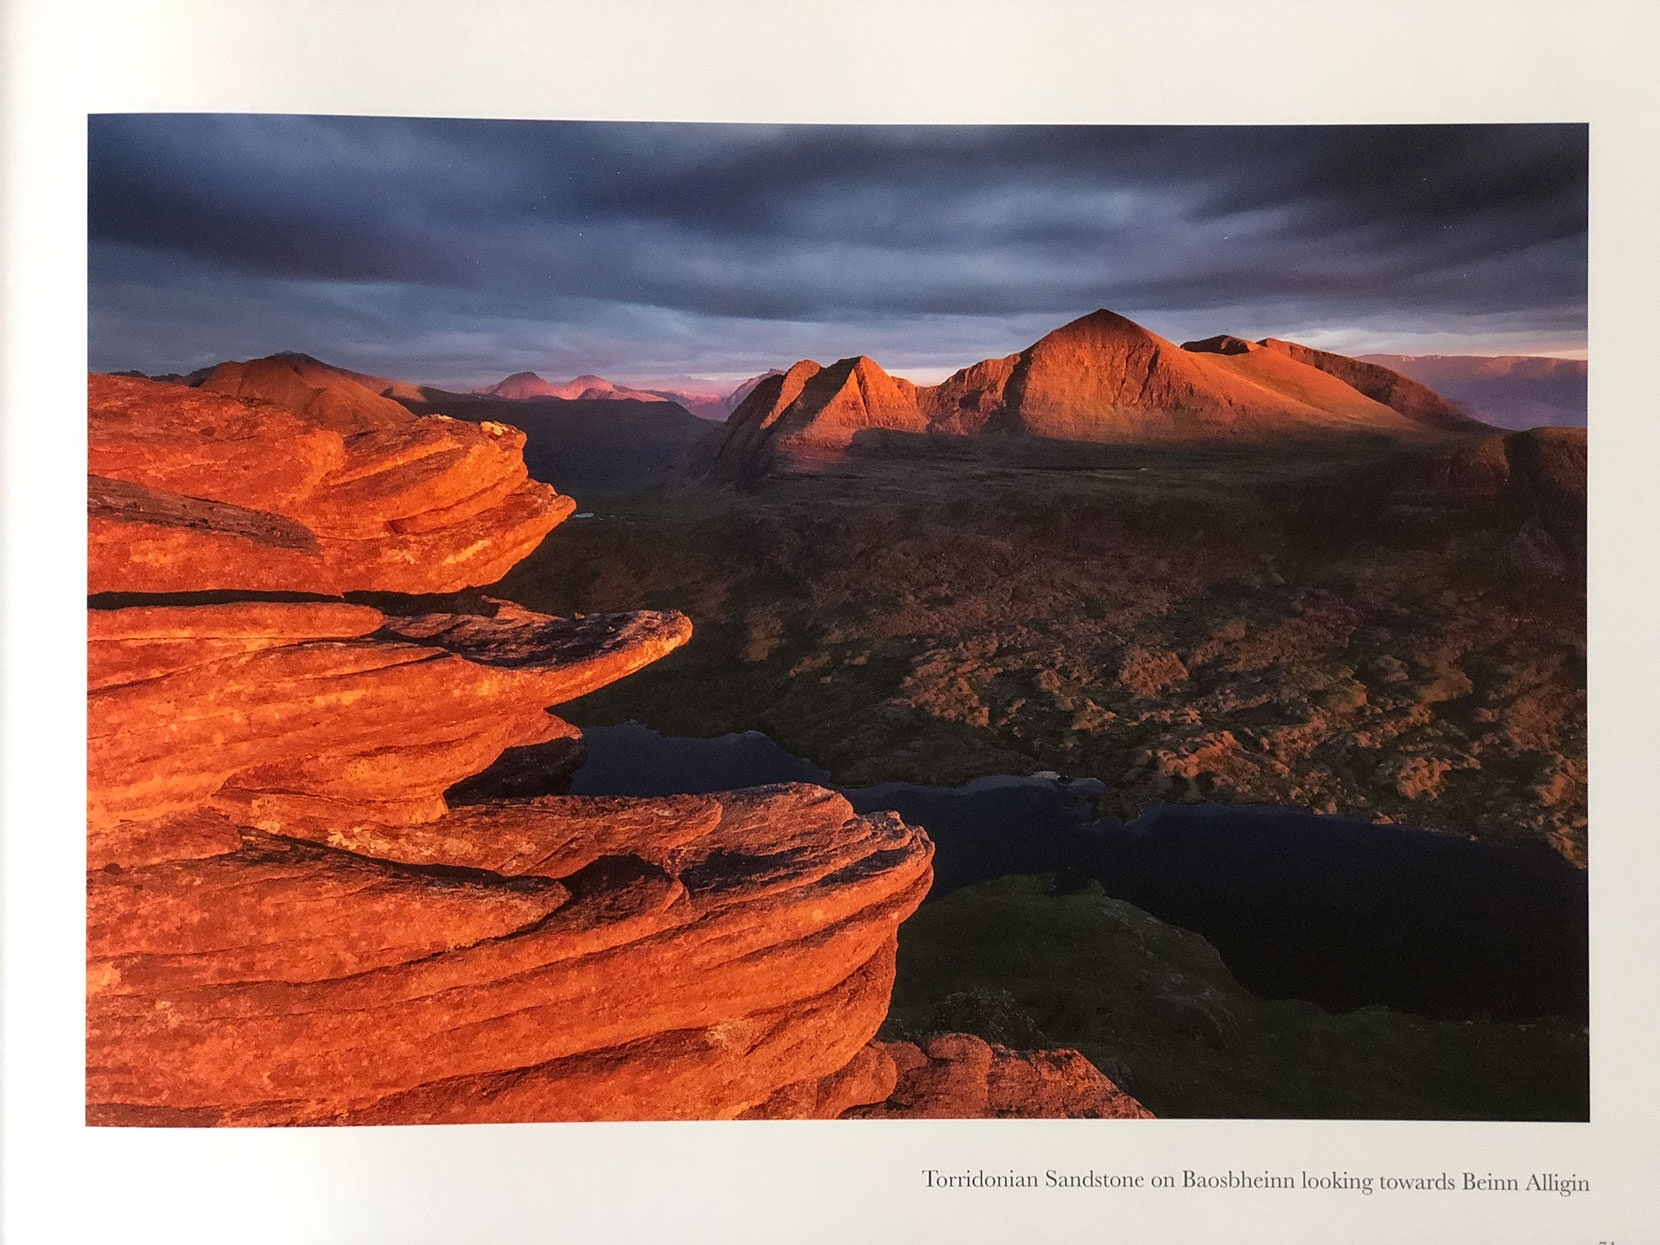 Spectacular light and great image balance at medium focal lengths. Look elsewhere for the rock-in-the-foreground approach